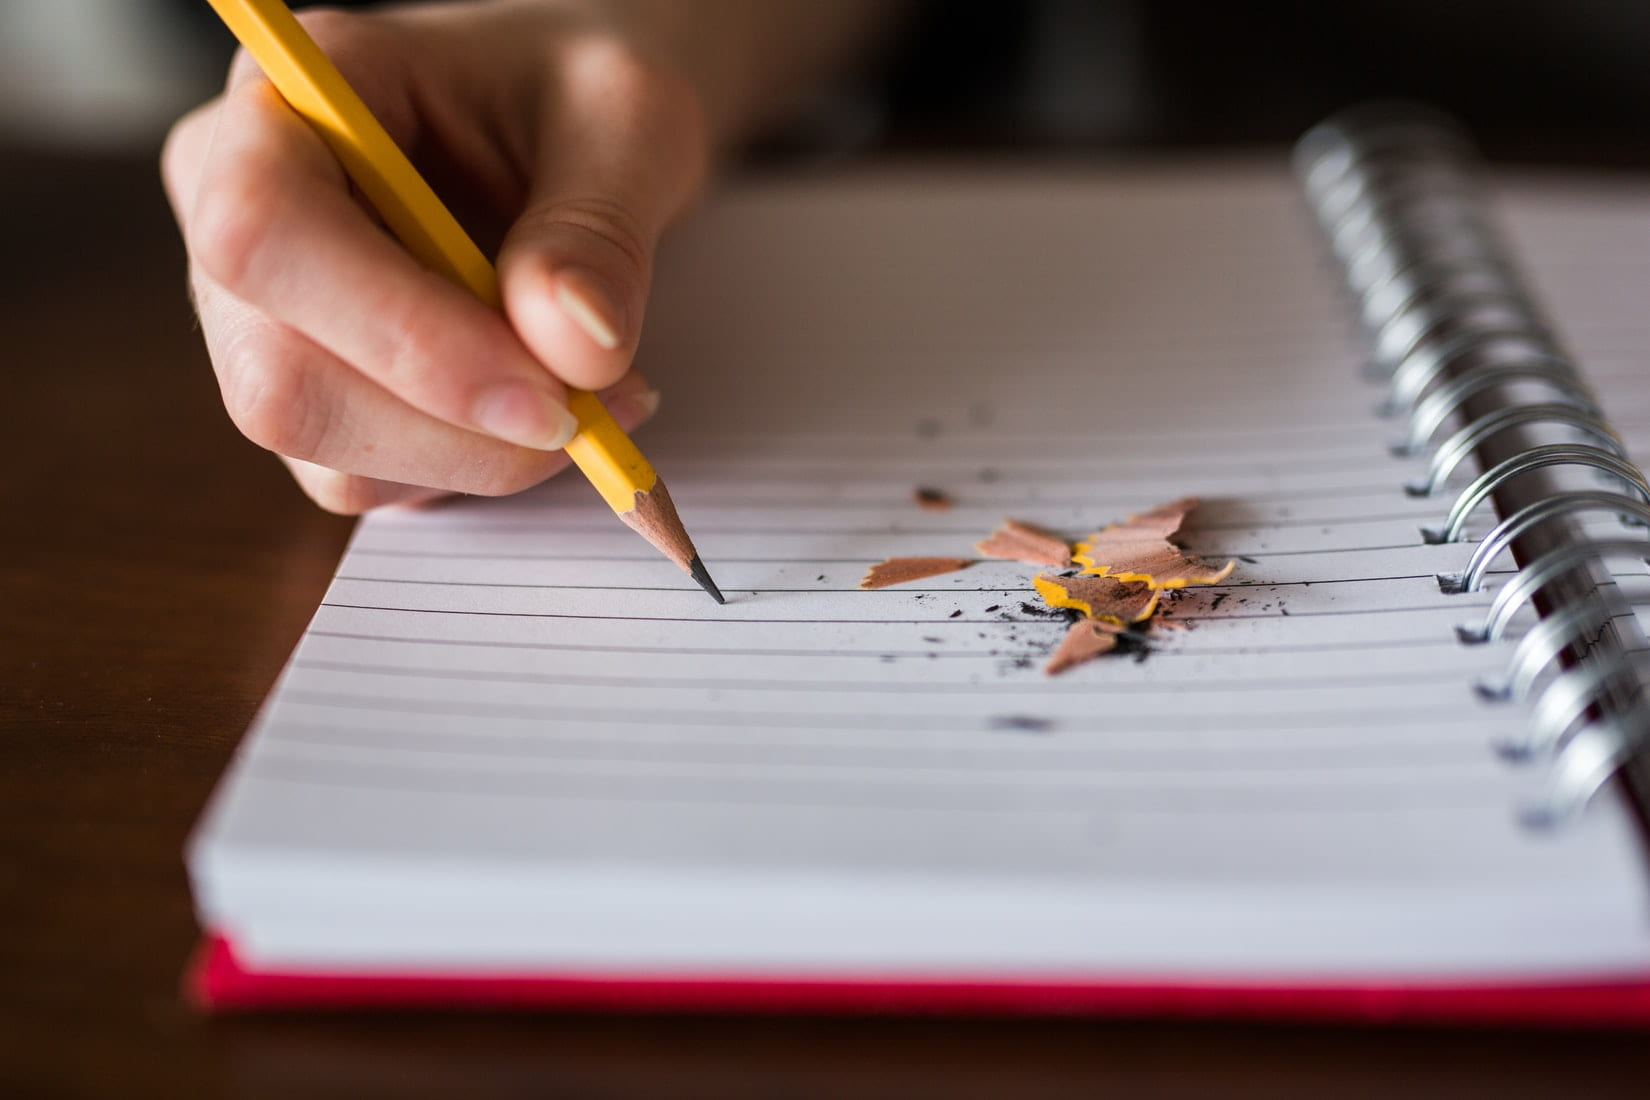 A person is holding a pencil tighly and the led is breaking and there are shavings all over an empty page.